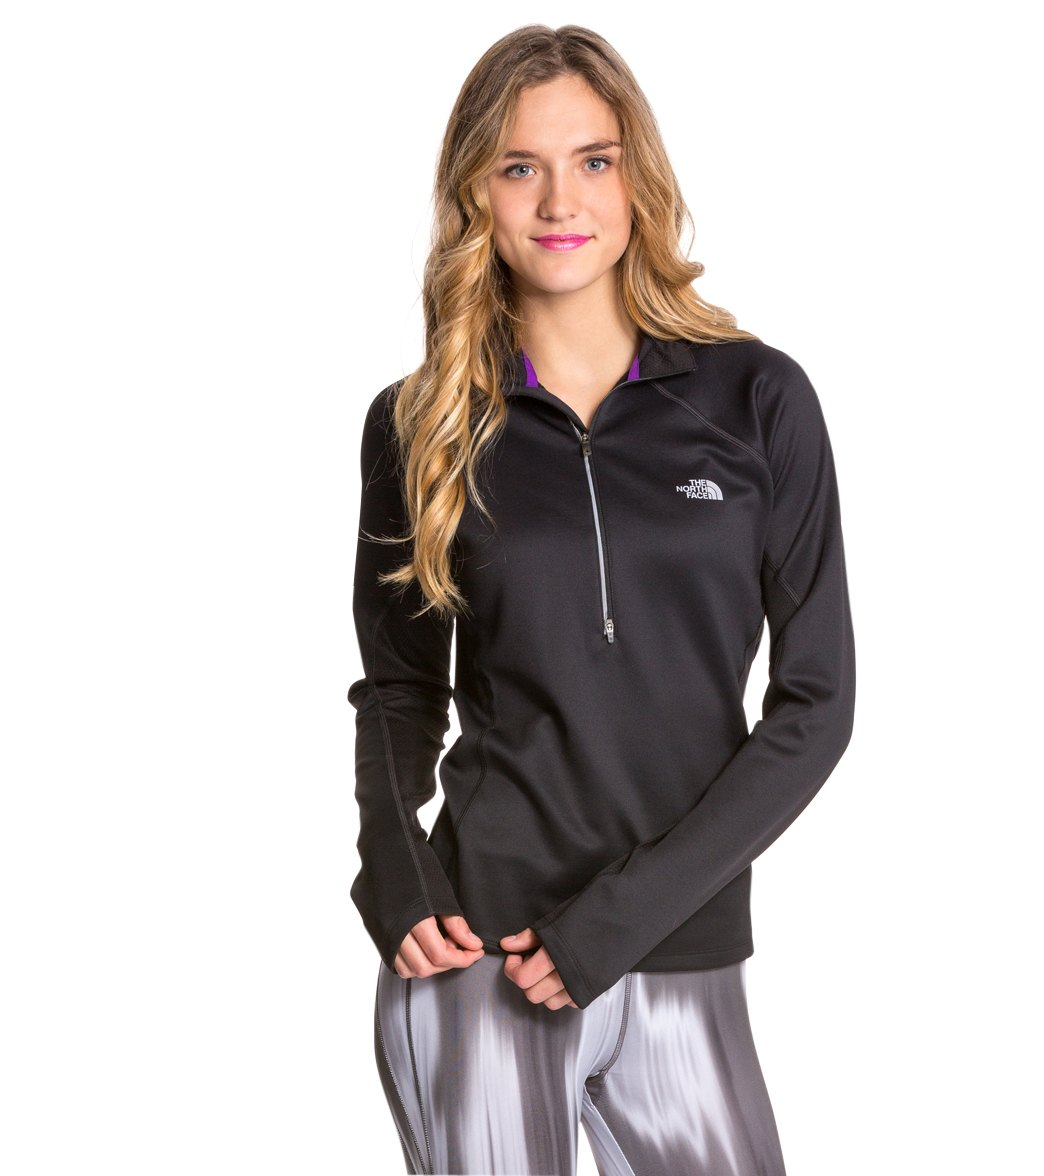 98c09a1a3 The North Face Women's Momentum Thermal Running 1u002F2 Zip